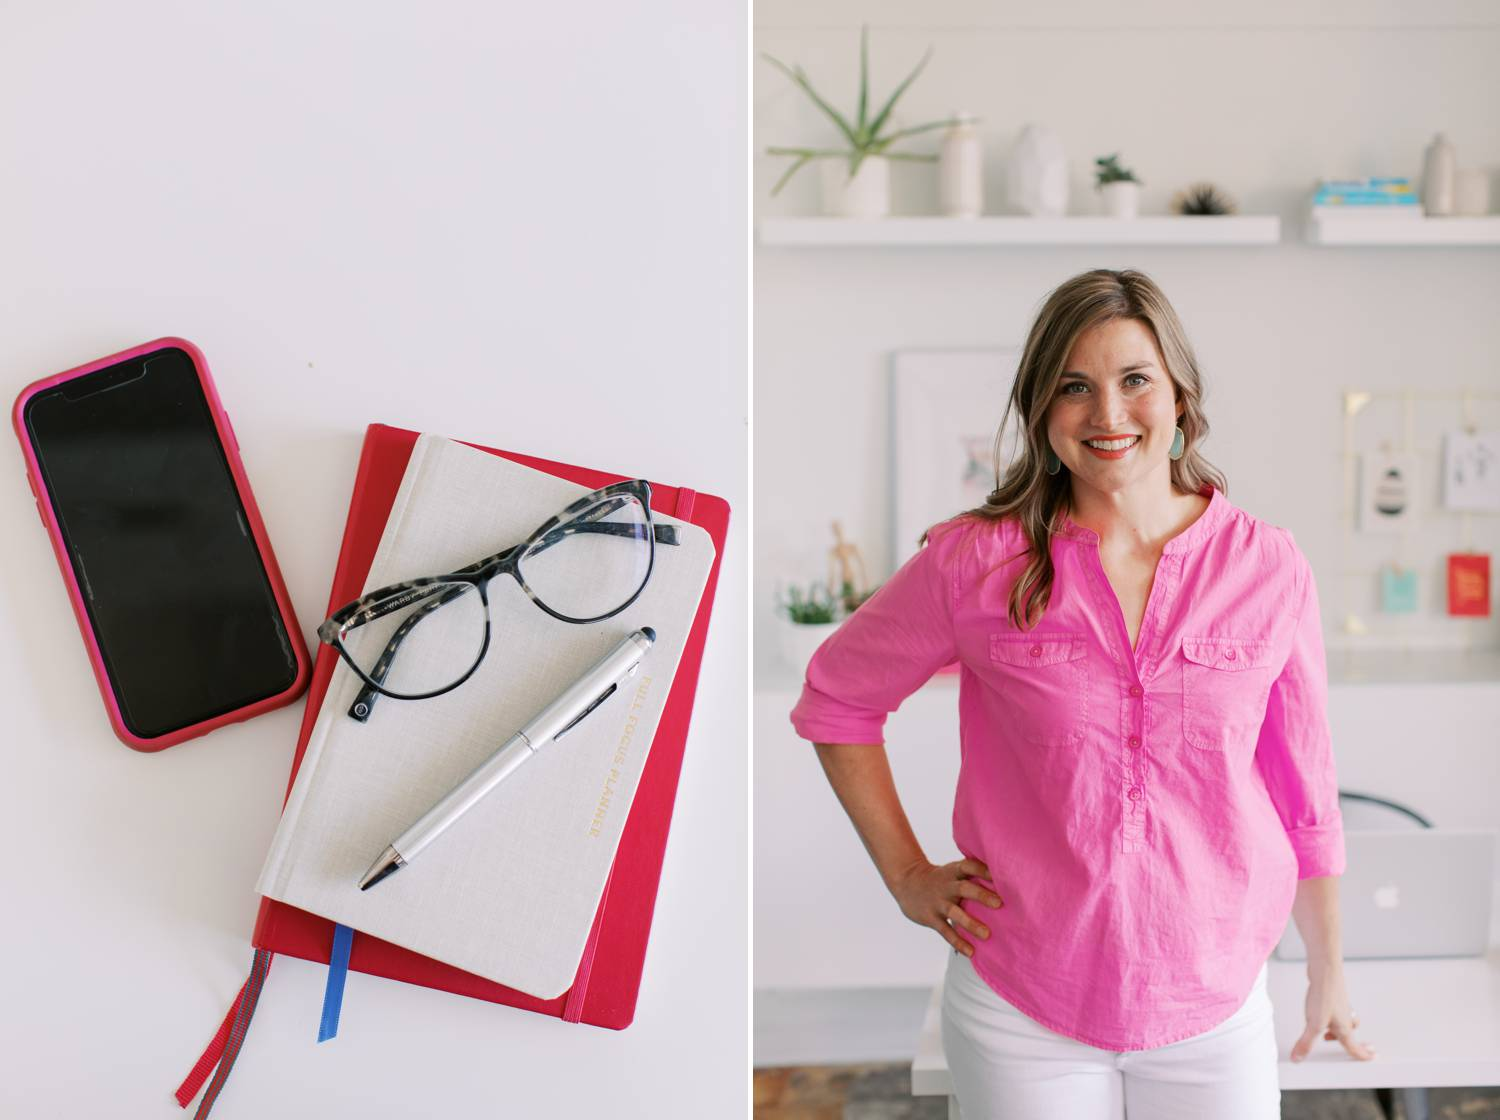 Katie Wussow stands in her bright, clean office wearing a bright pink shirt